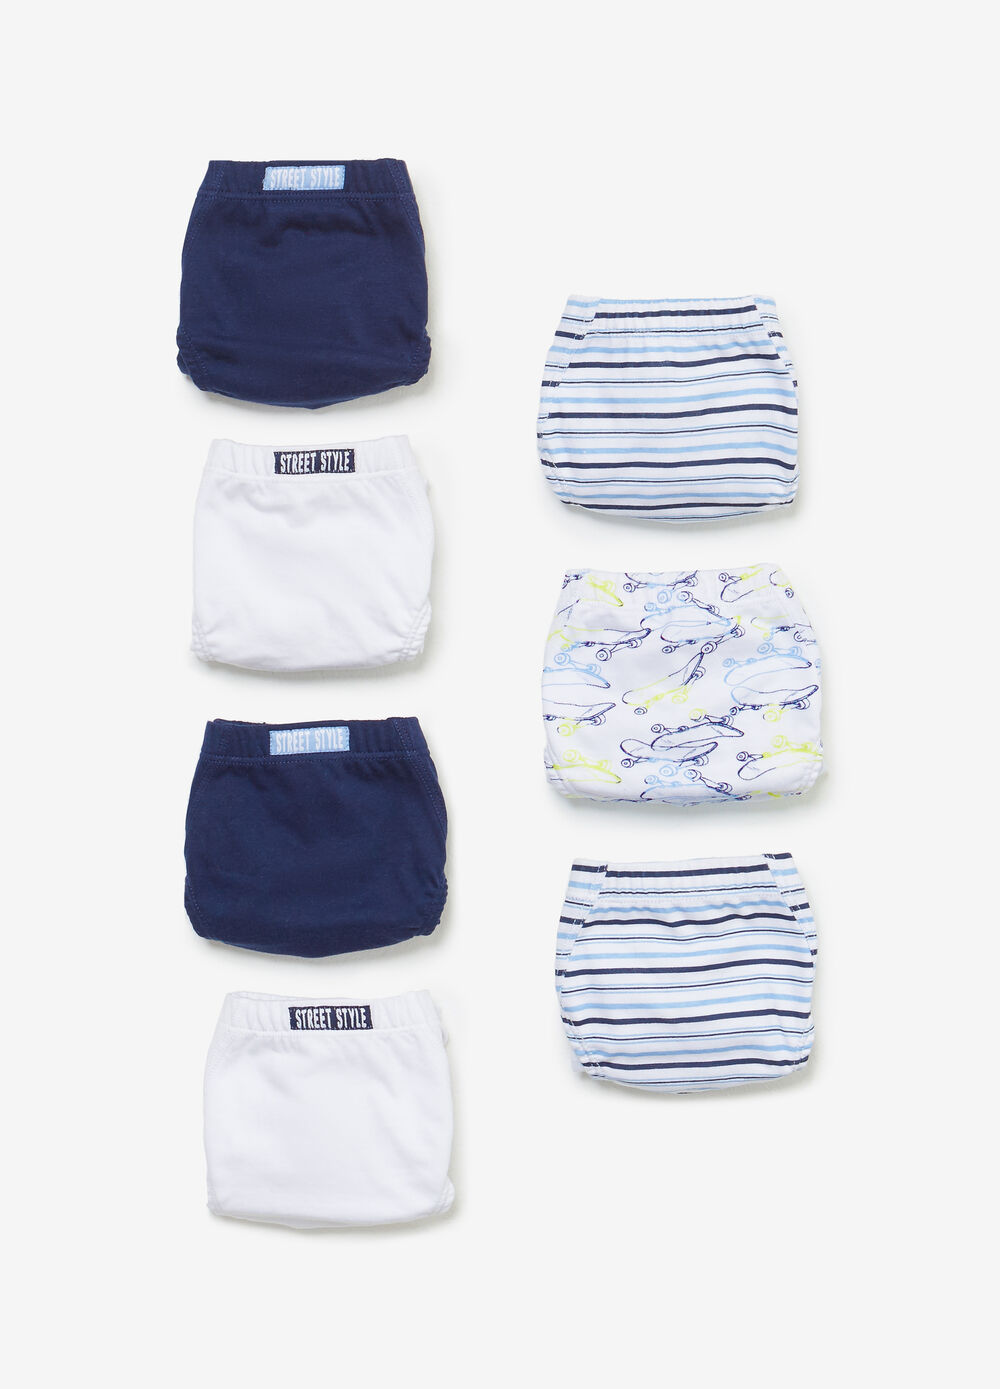 Seven-pack striped and solid colour cotton briefs